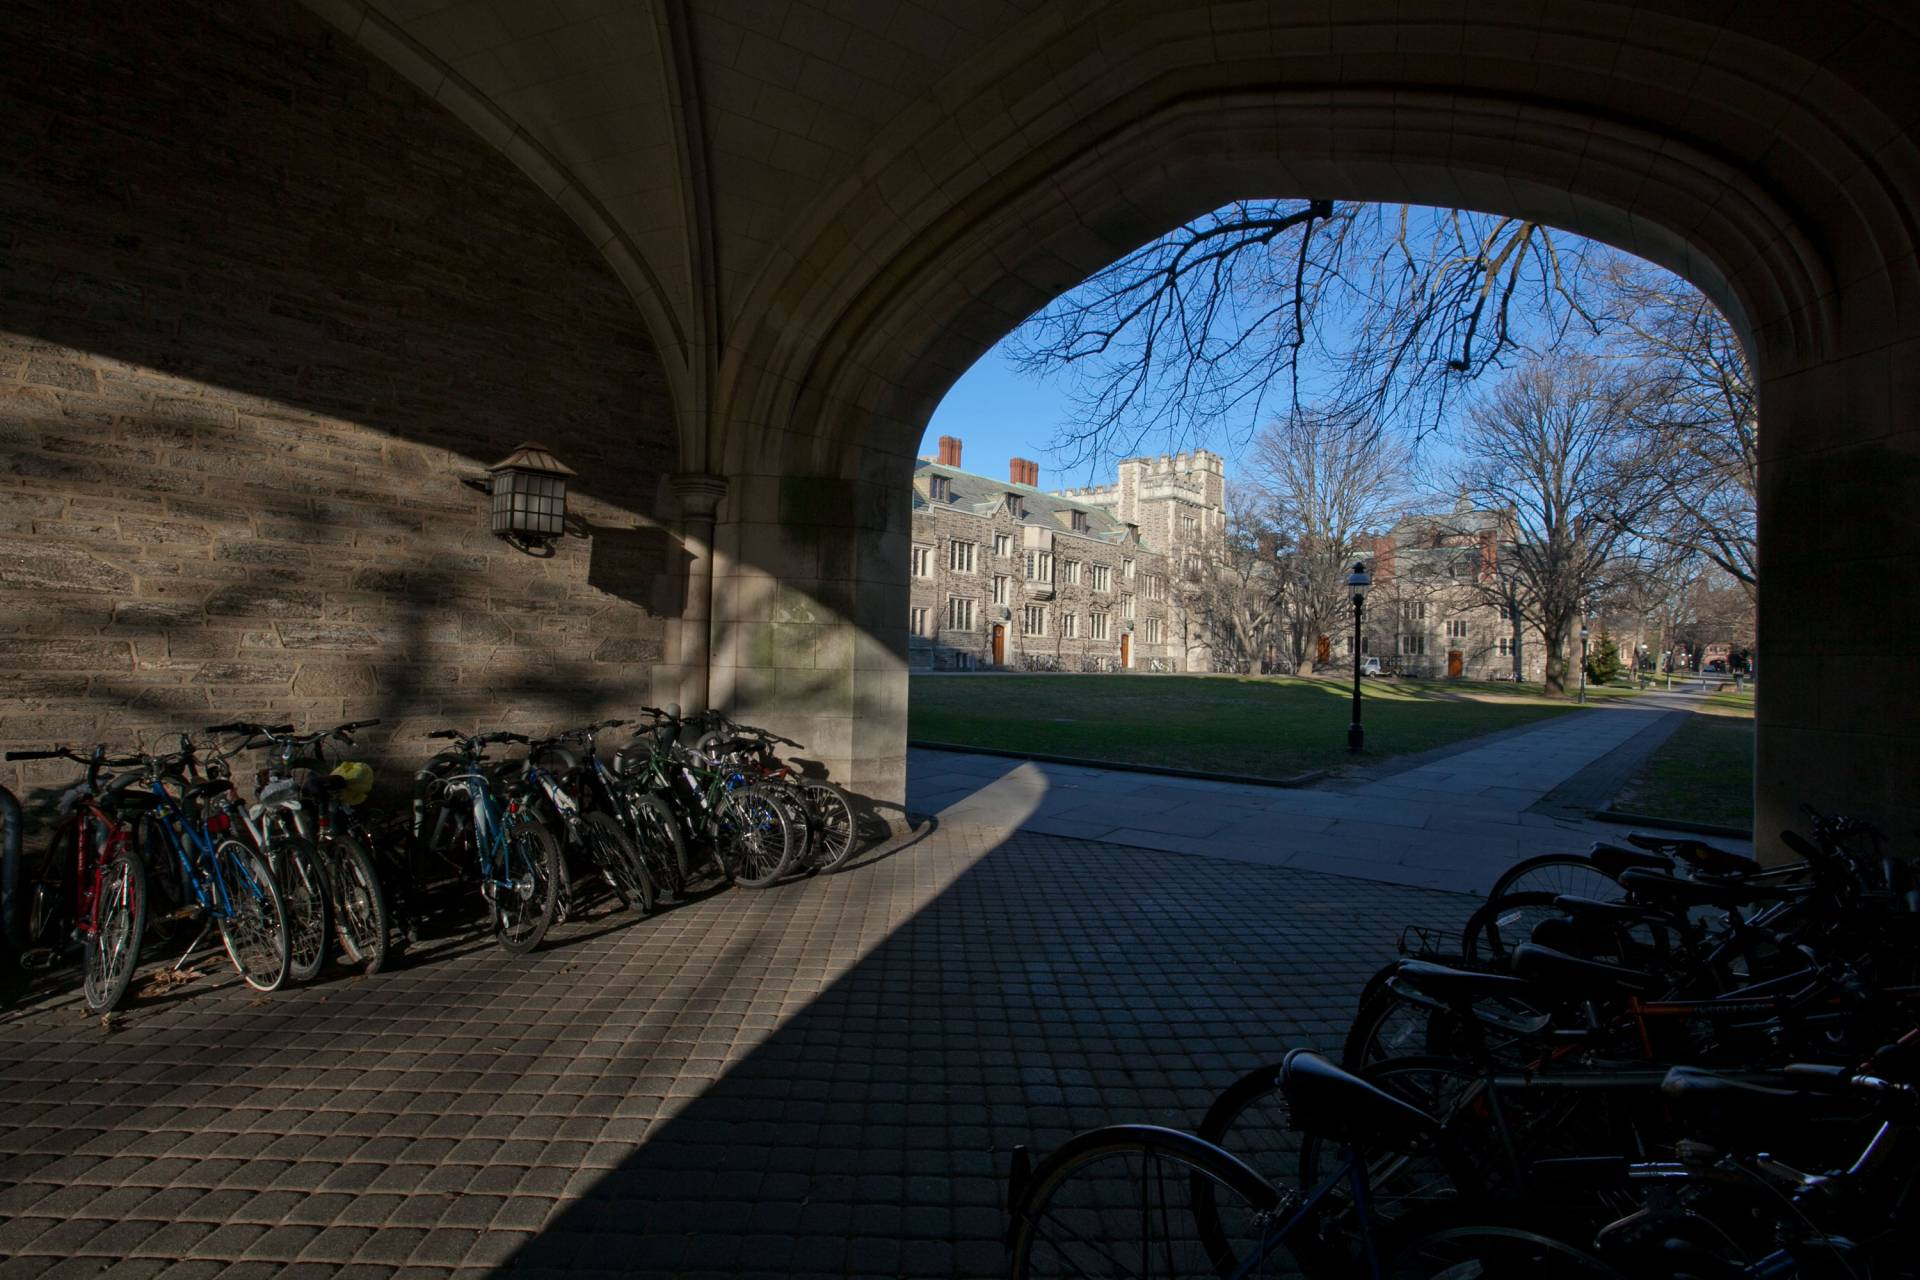 Sunlight falls on bicycles in an archway